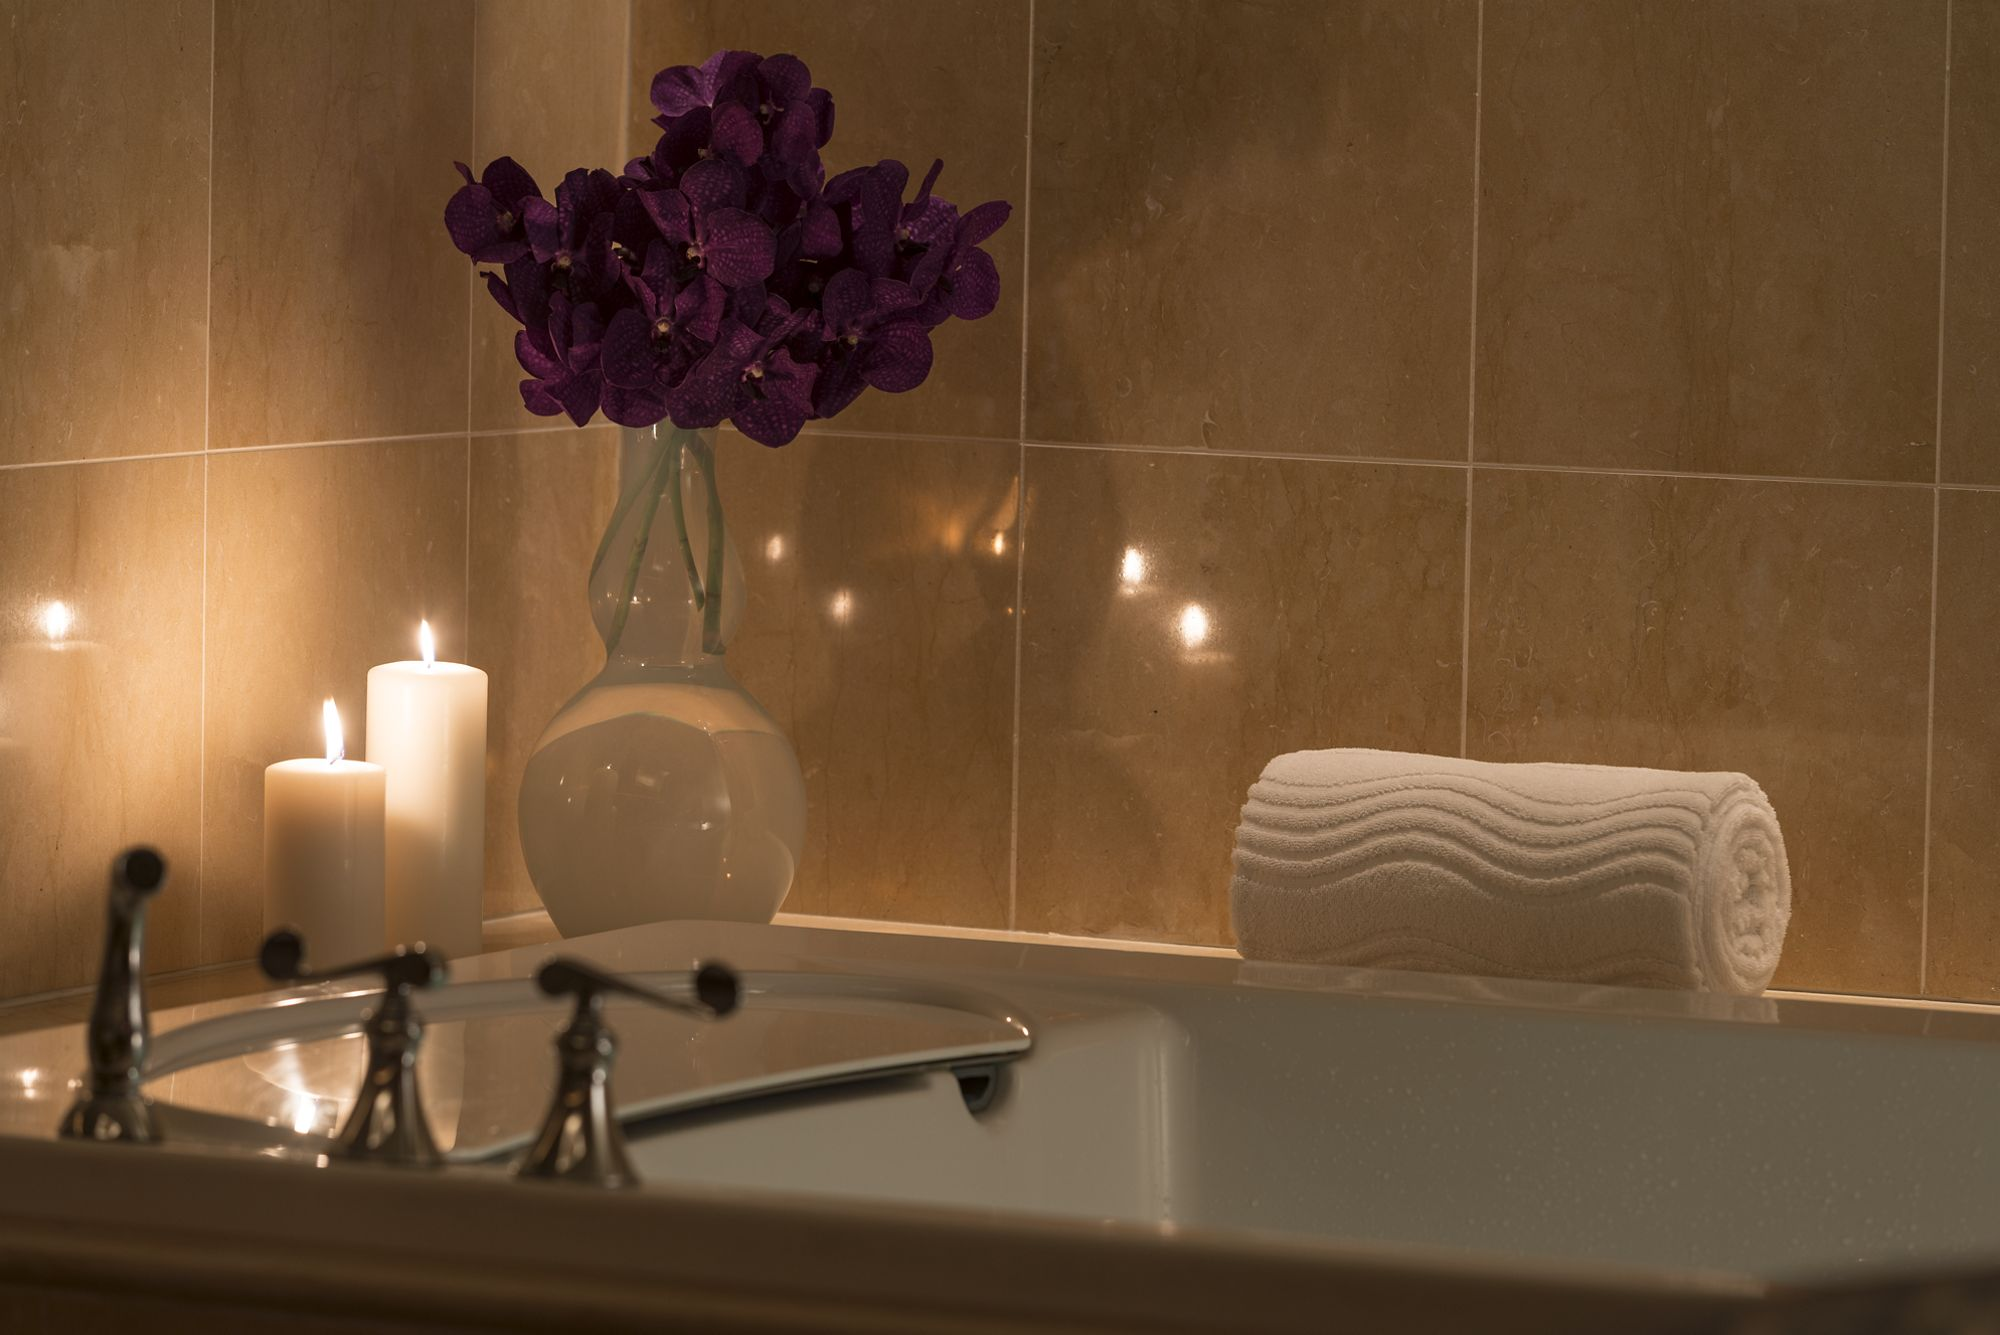 A tub with flowers and candles on the edge